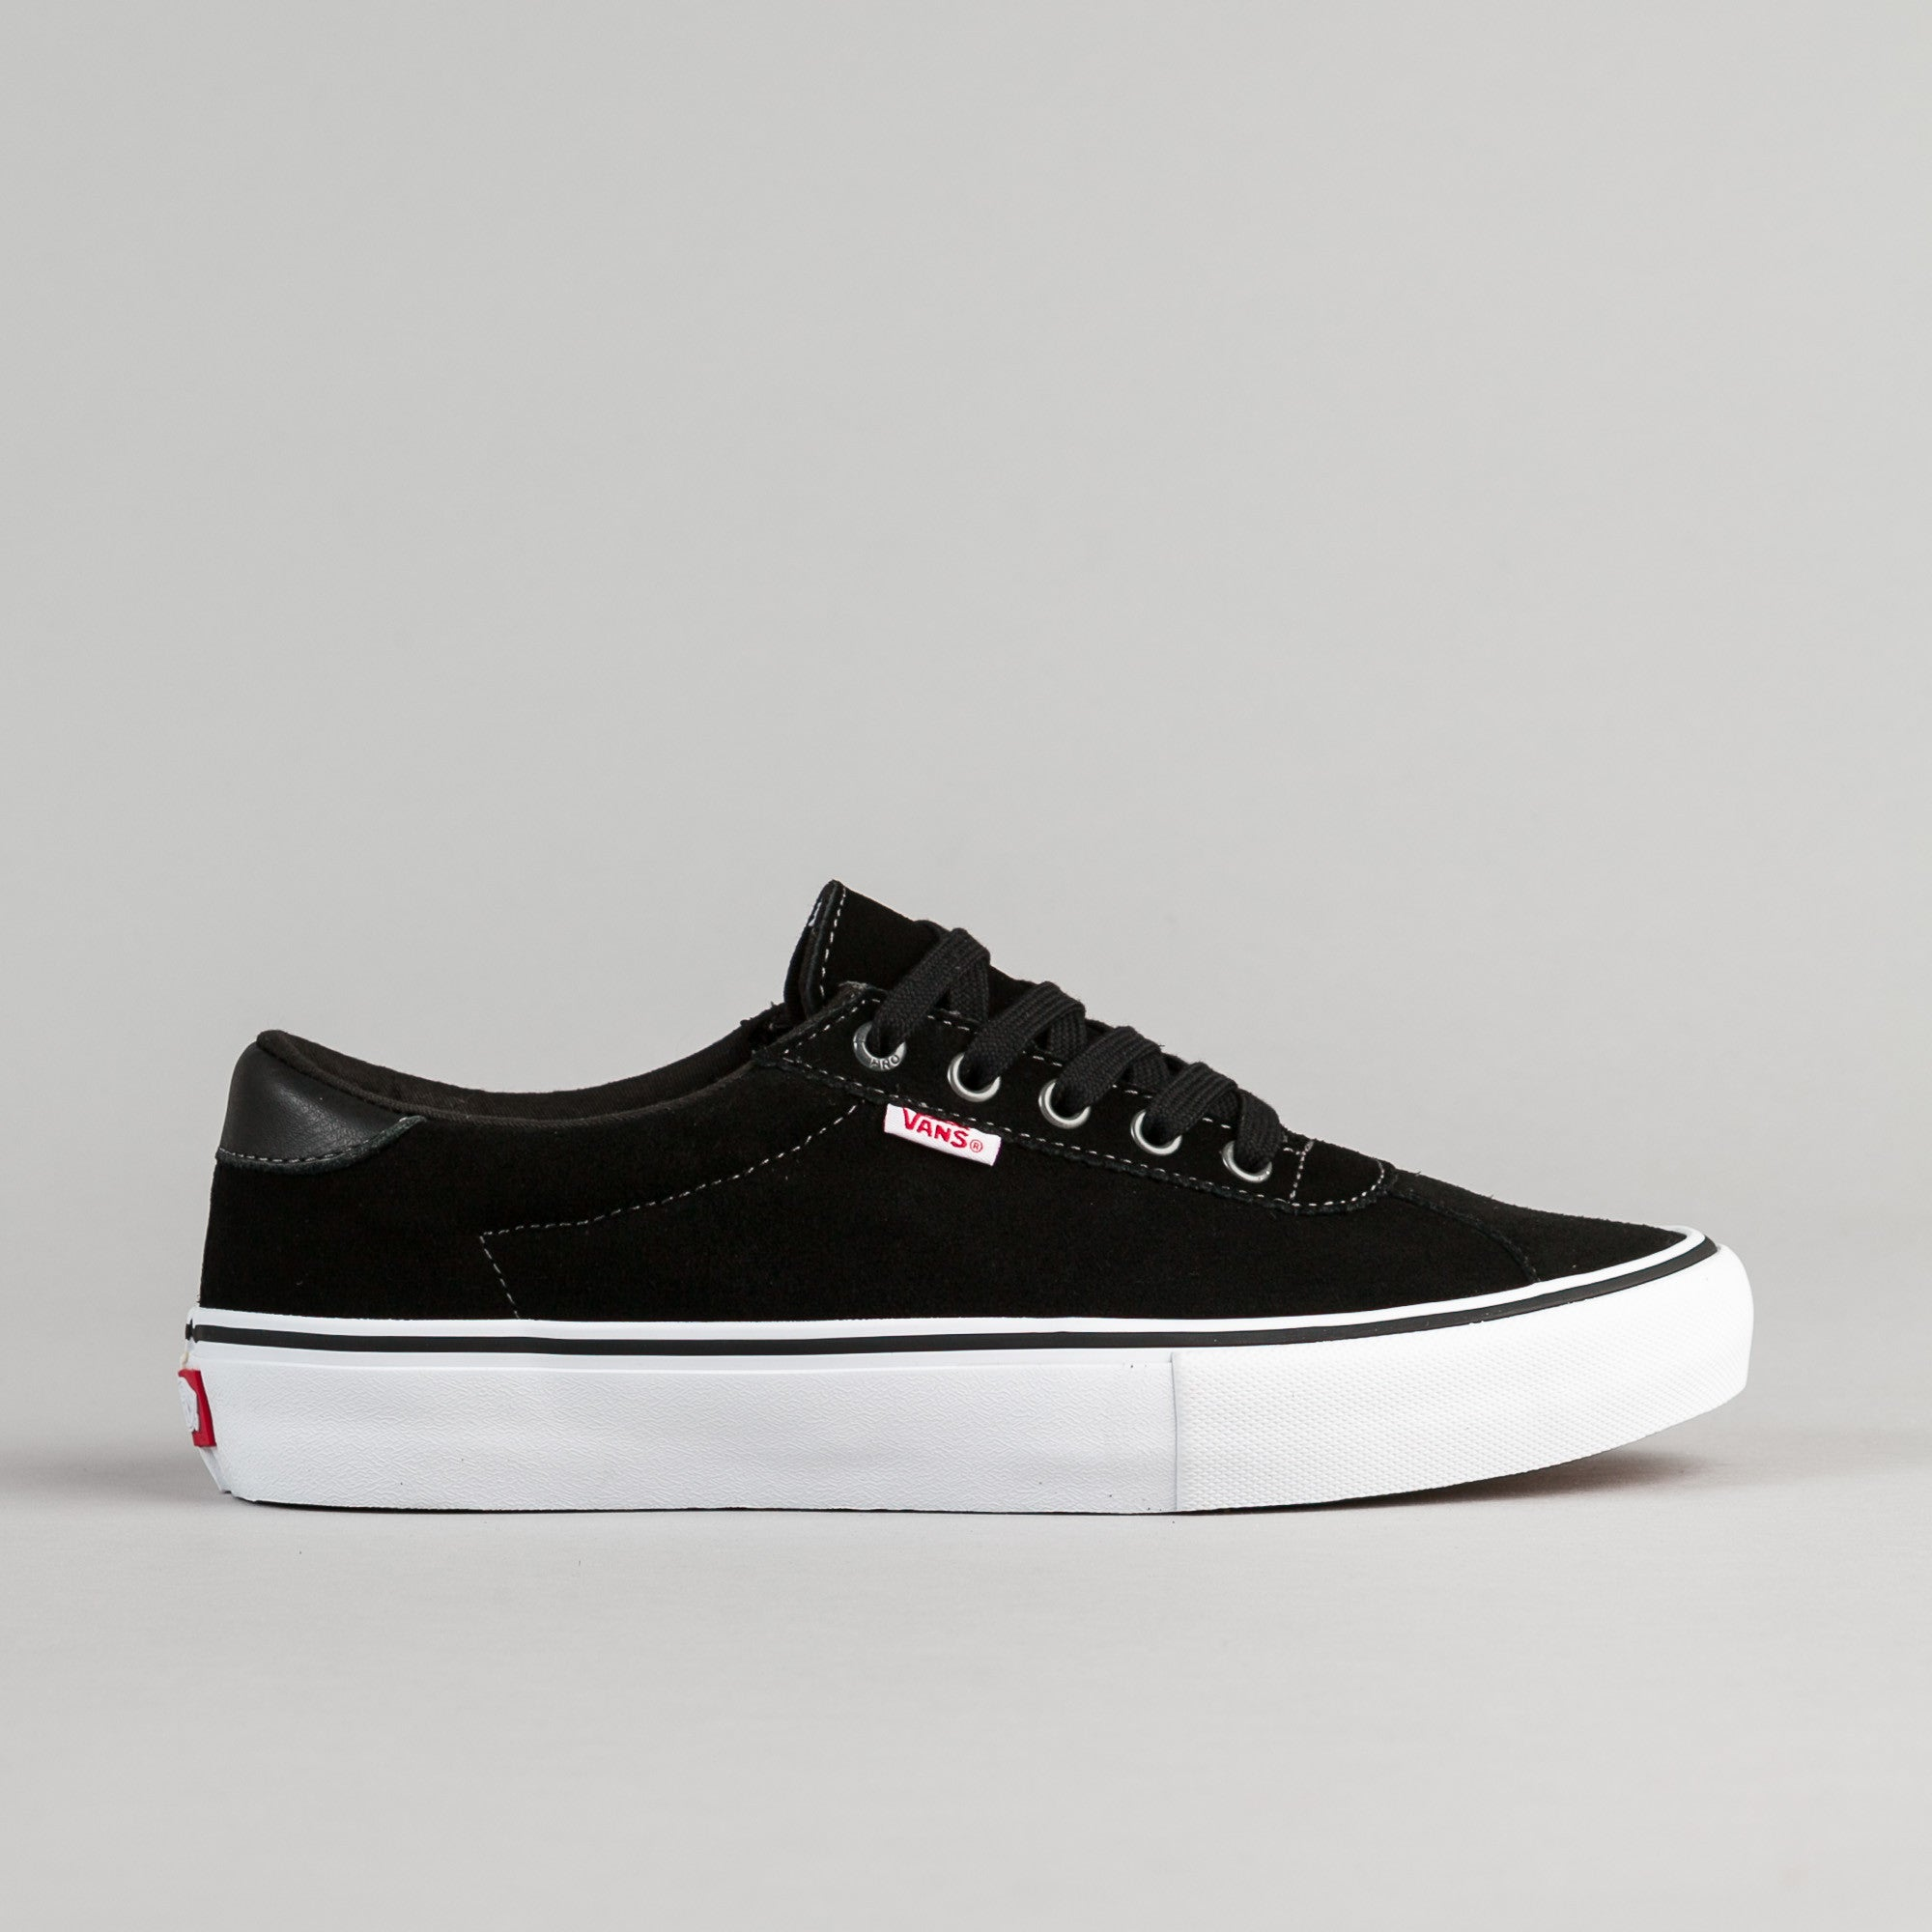 8124fba283 Buy vans original foot locker